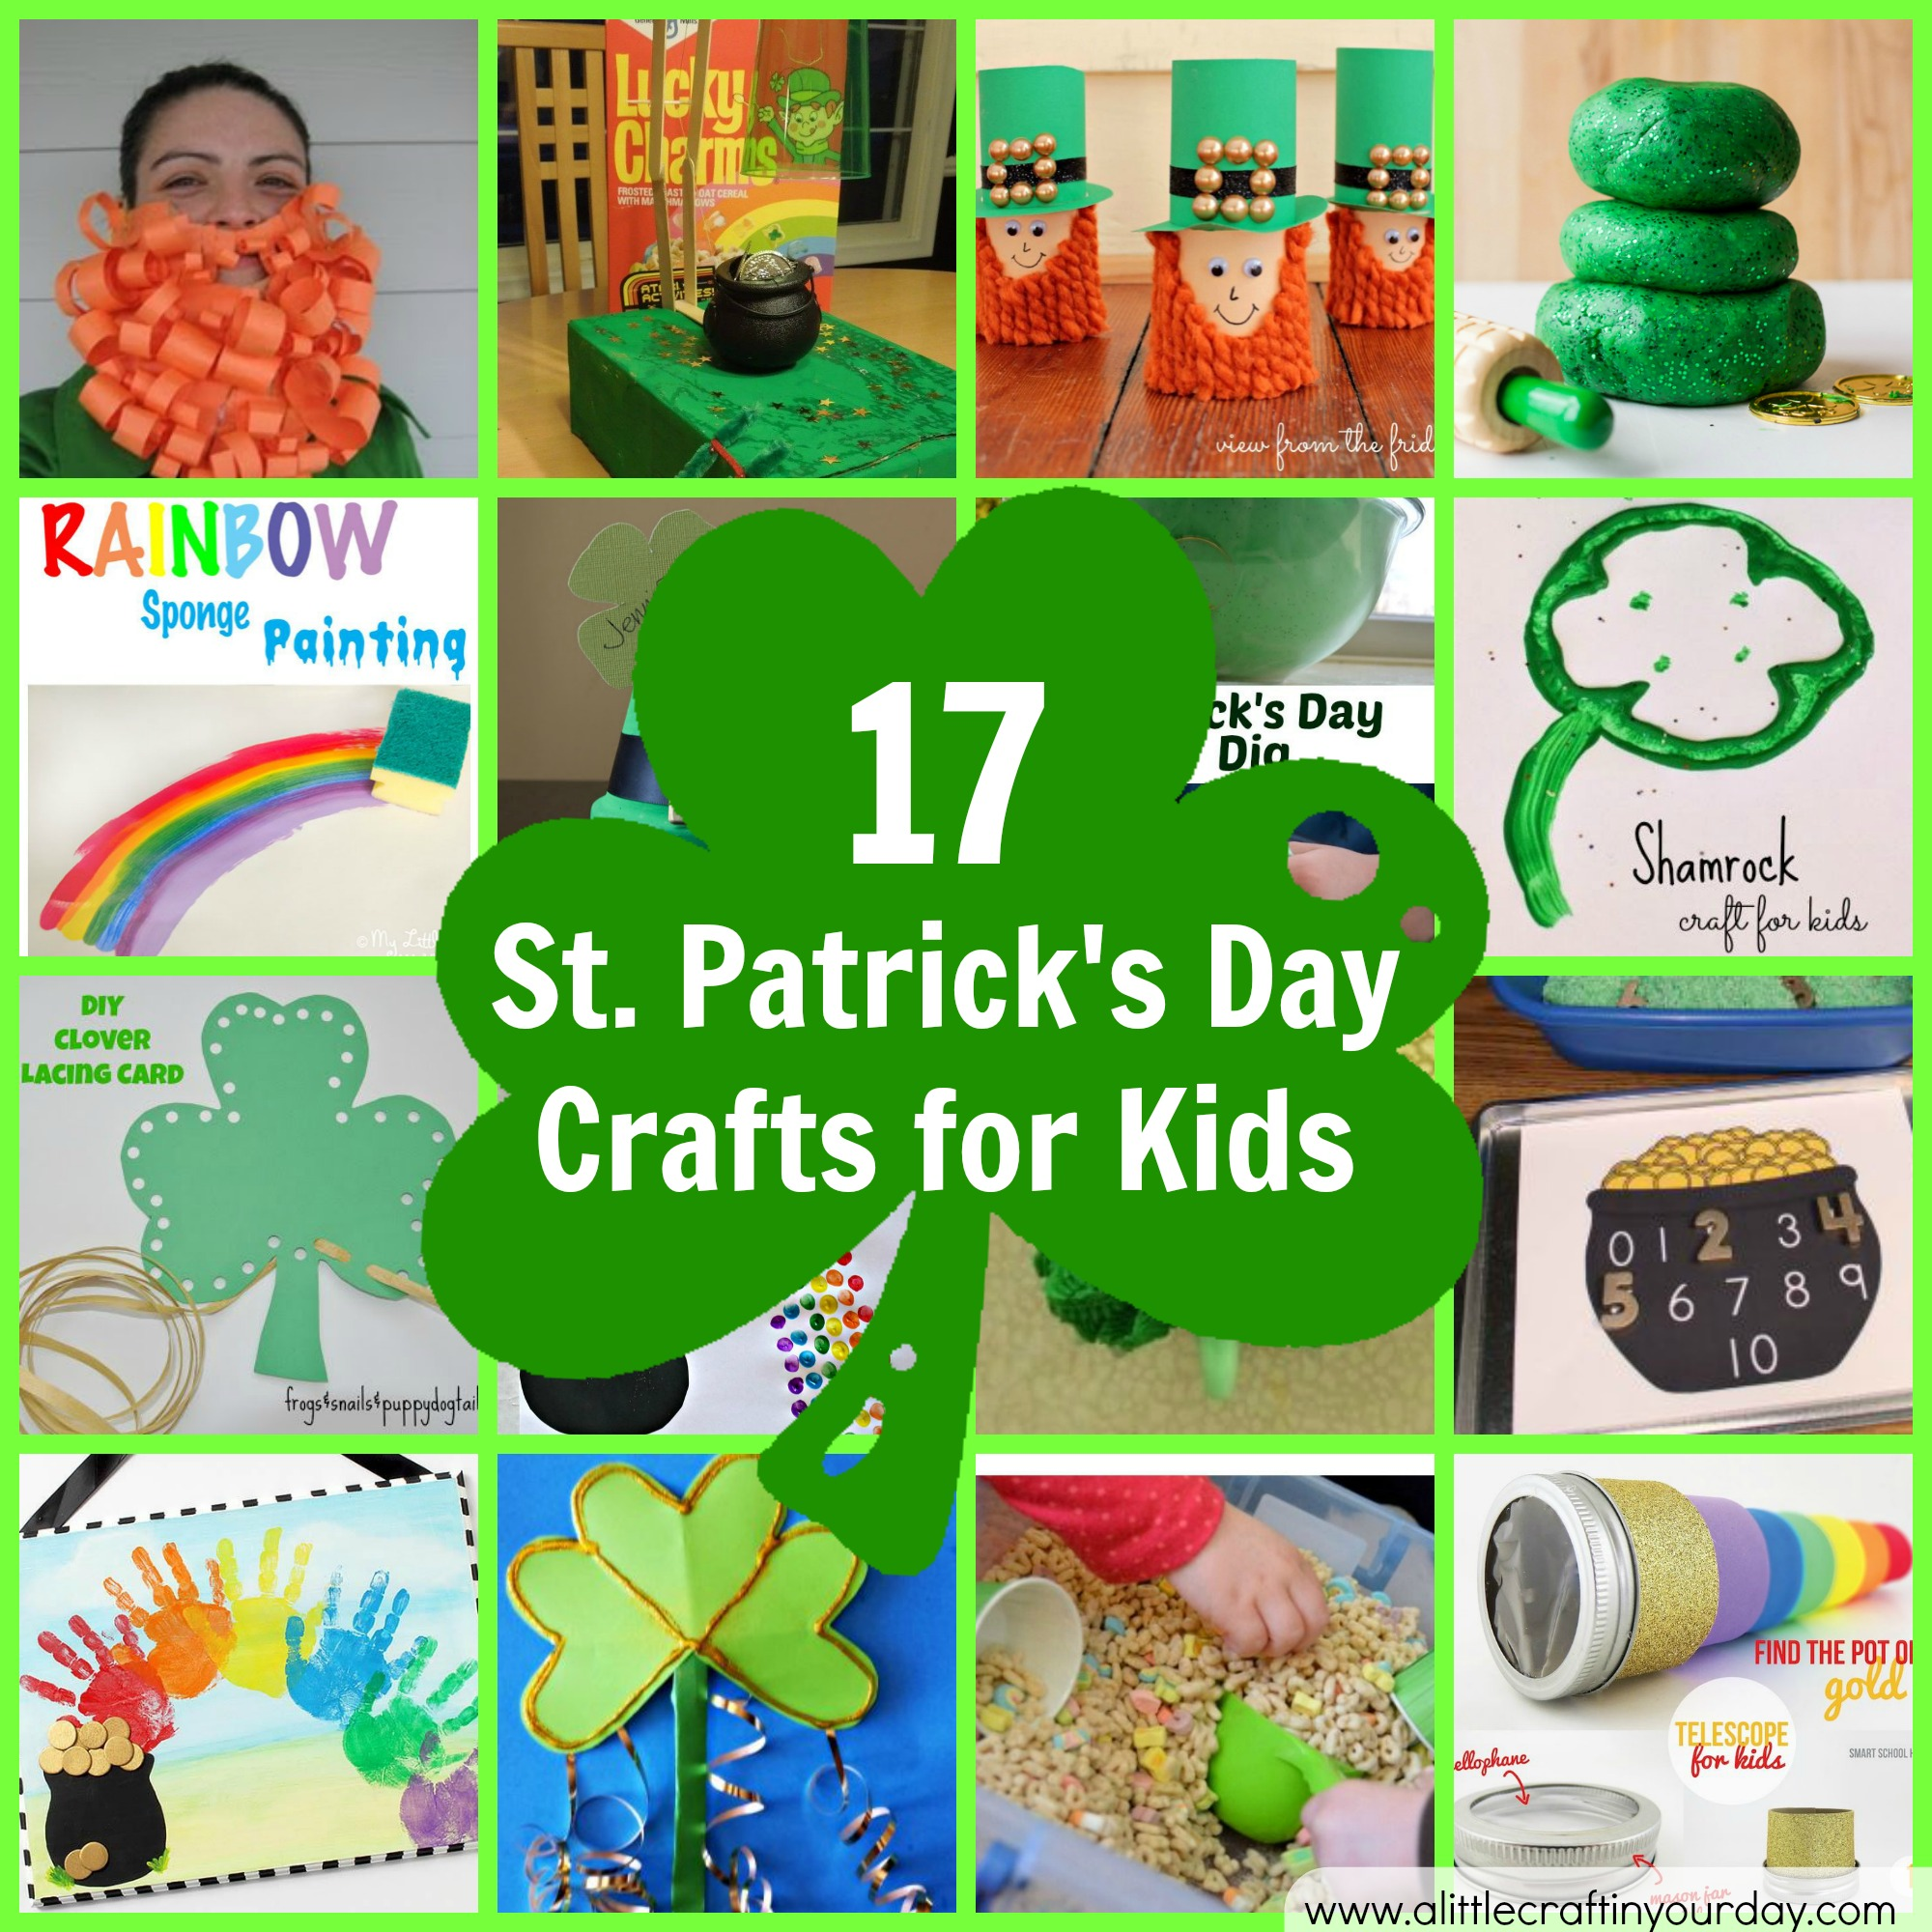 St pattys day crafts - 17_st_patricks_day_crafts_for_kids